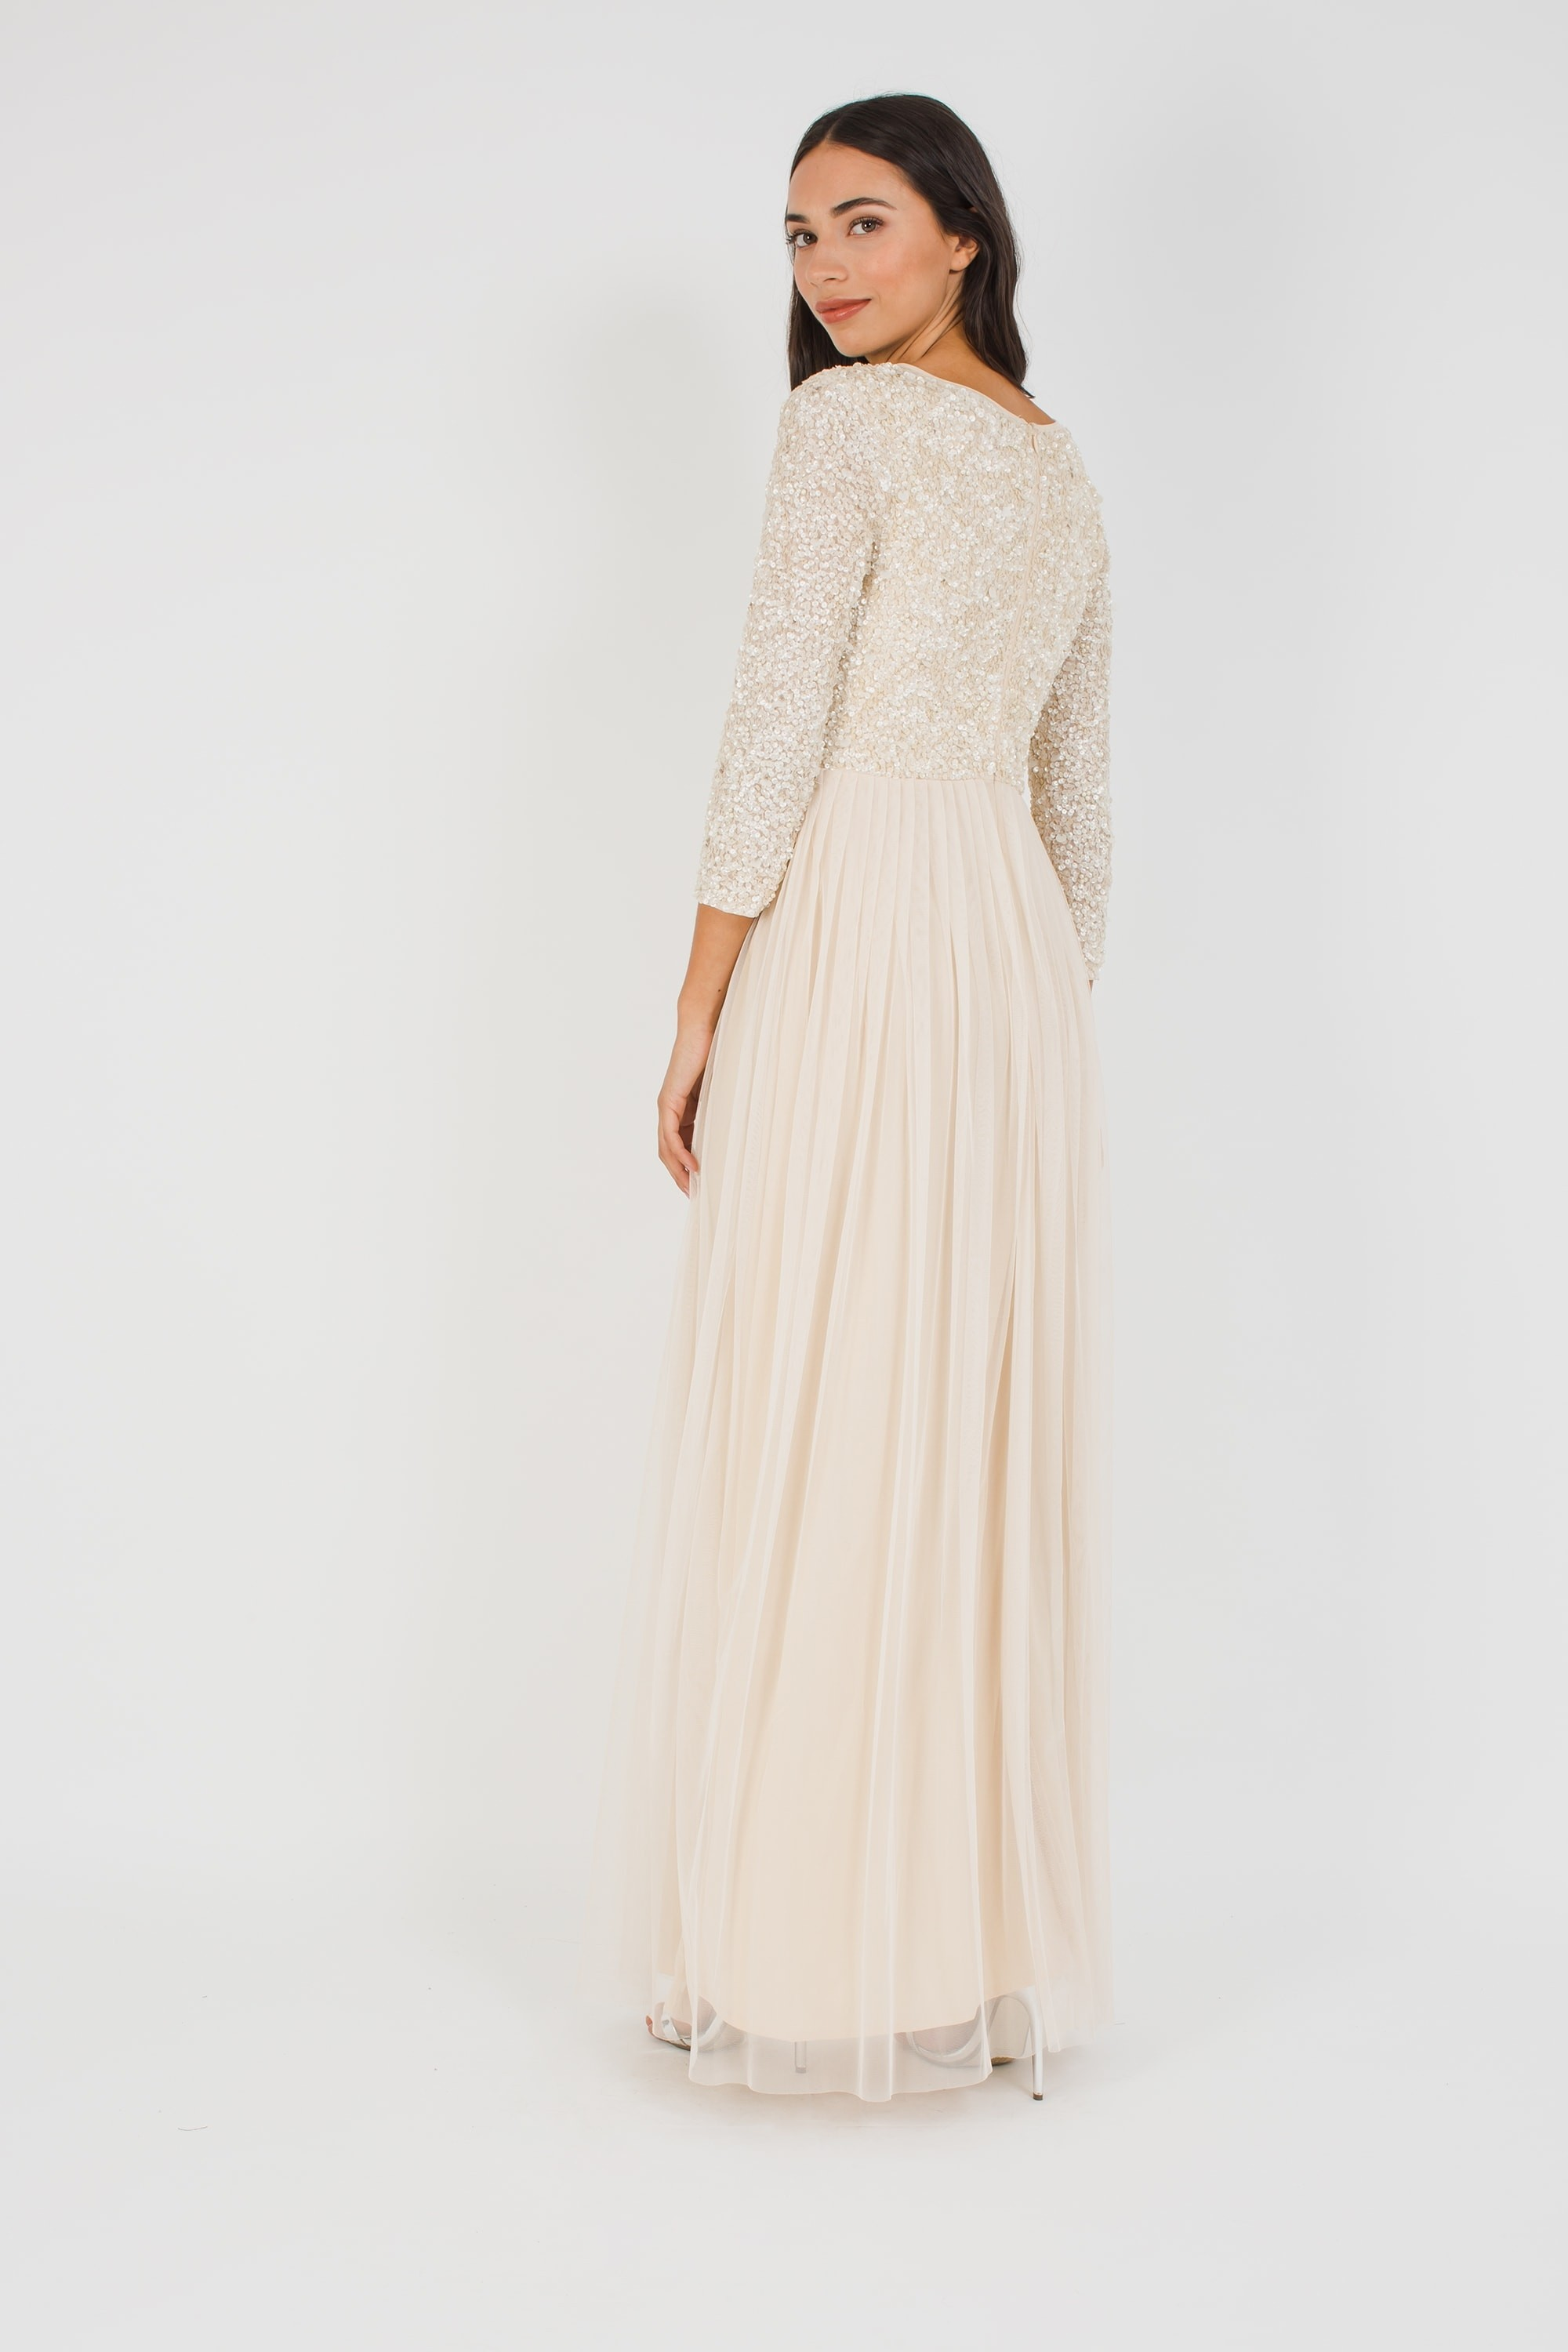 Lace Amp Beads Picasso 3 4 Sleeve Cream Maxi Dress Lace